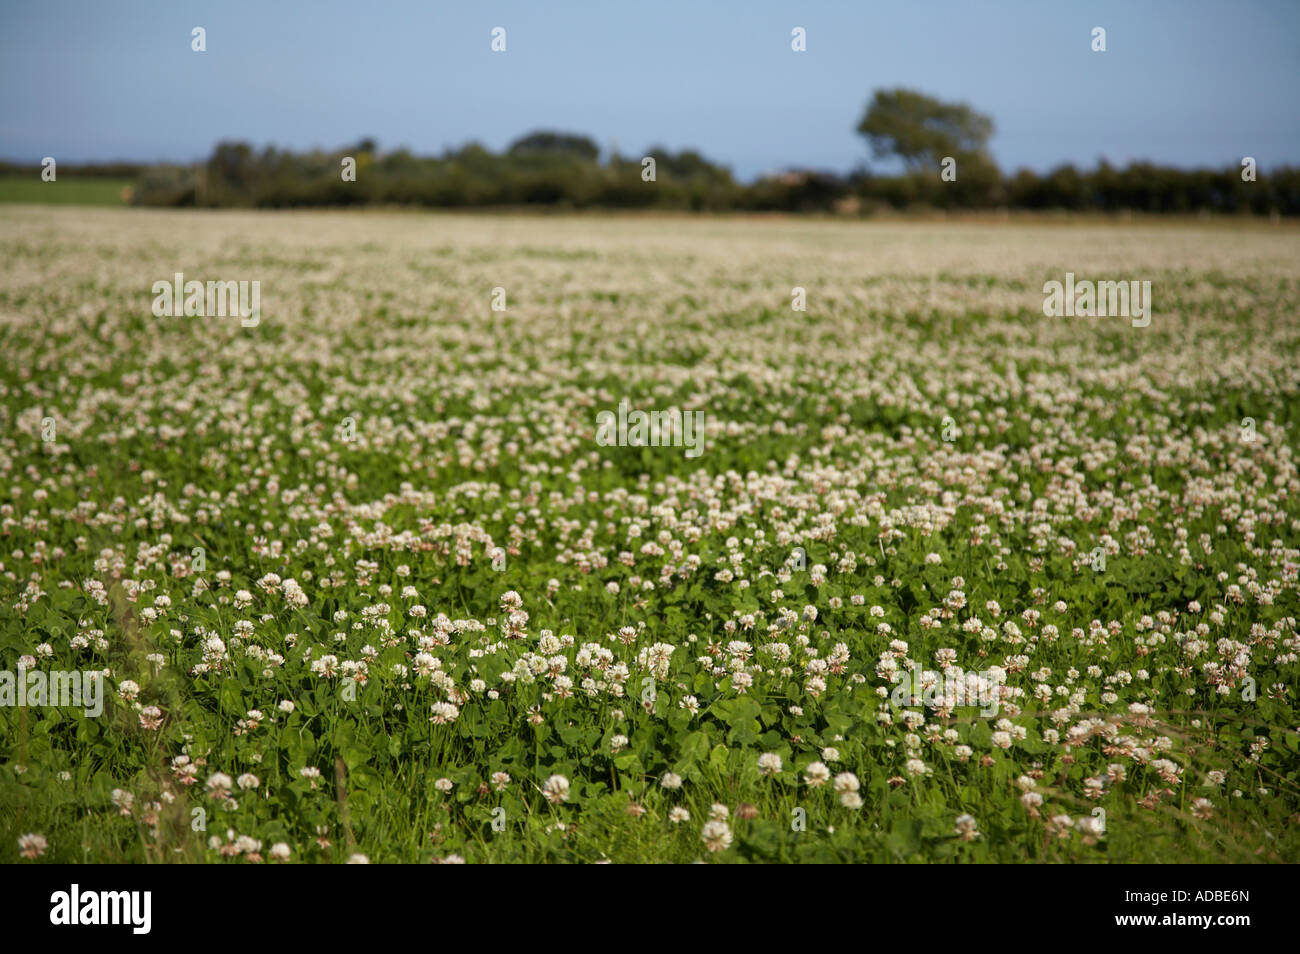 Field of clover with white flowers trifolium repens stock photo field of clover with white flowers trifolium repens mightylinksfo